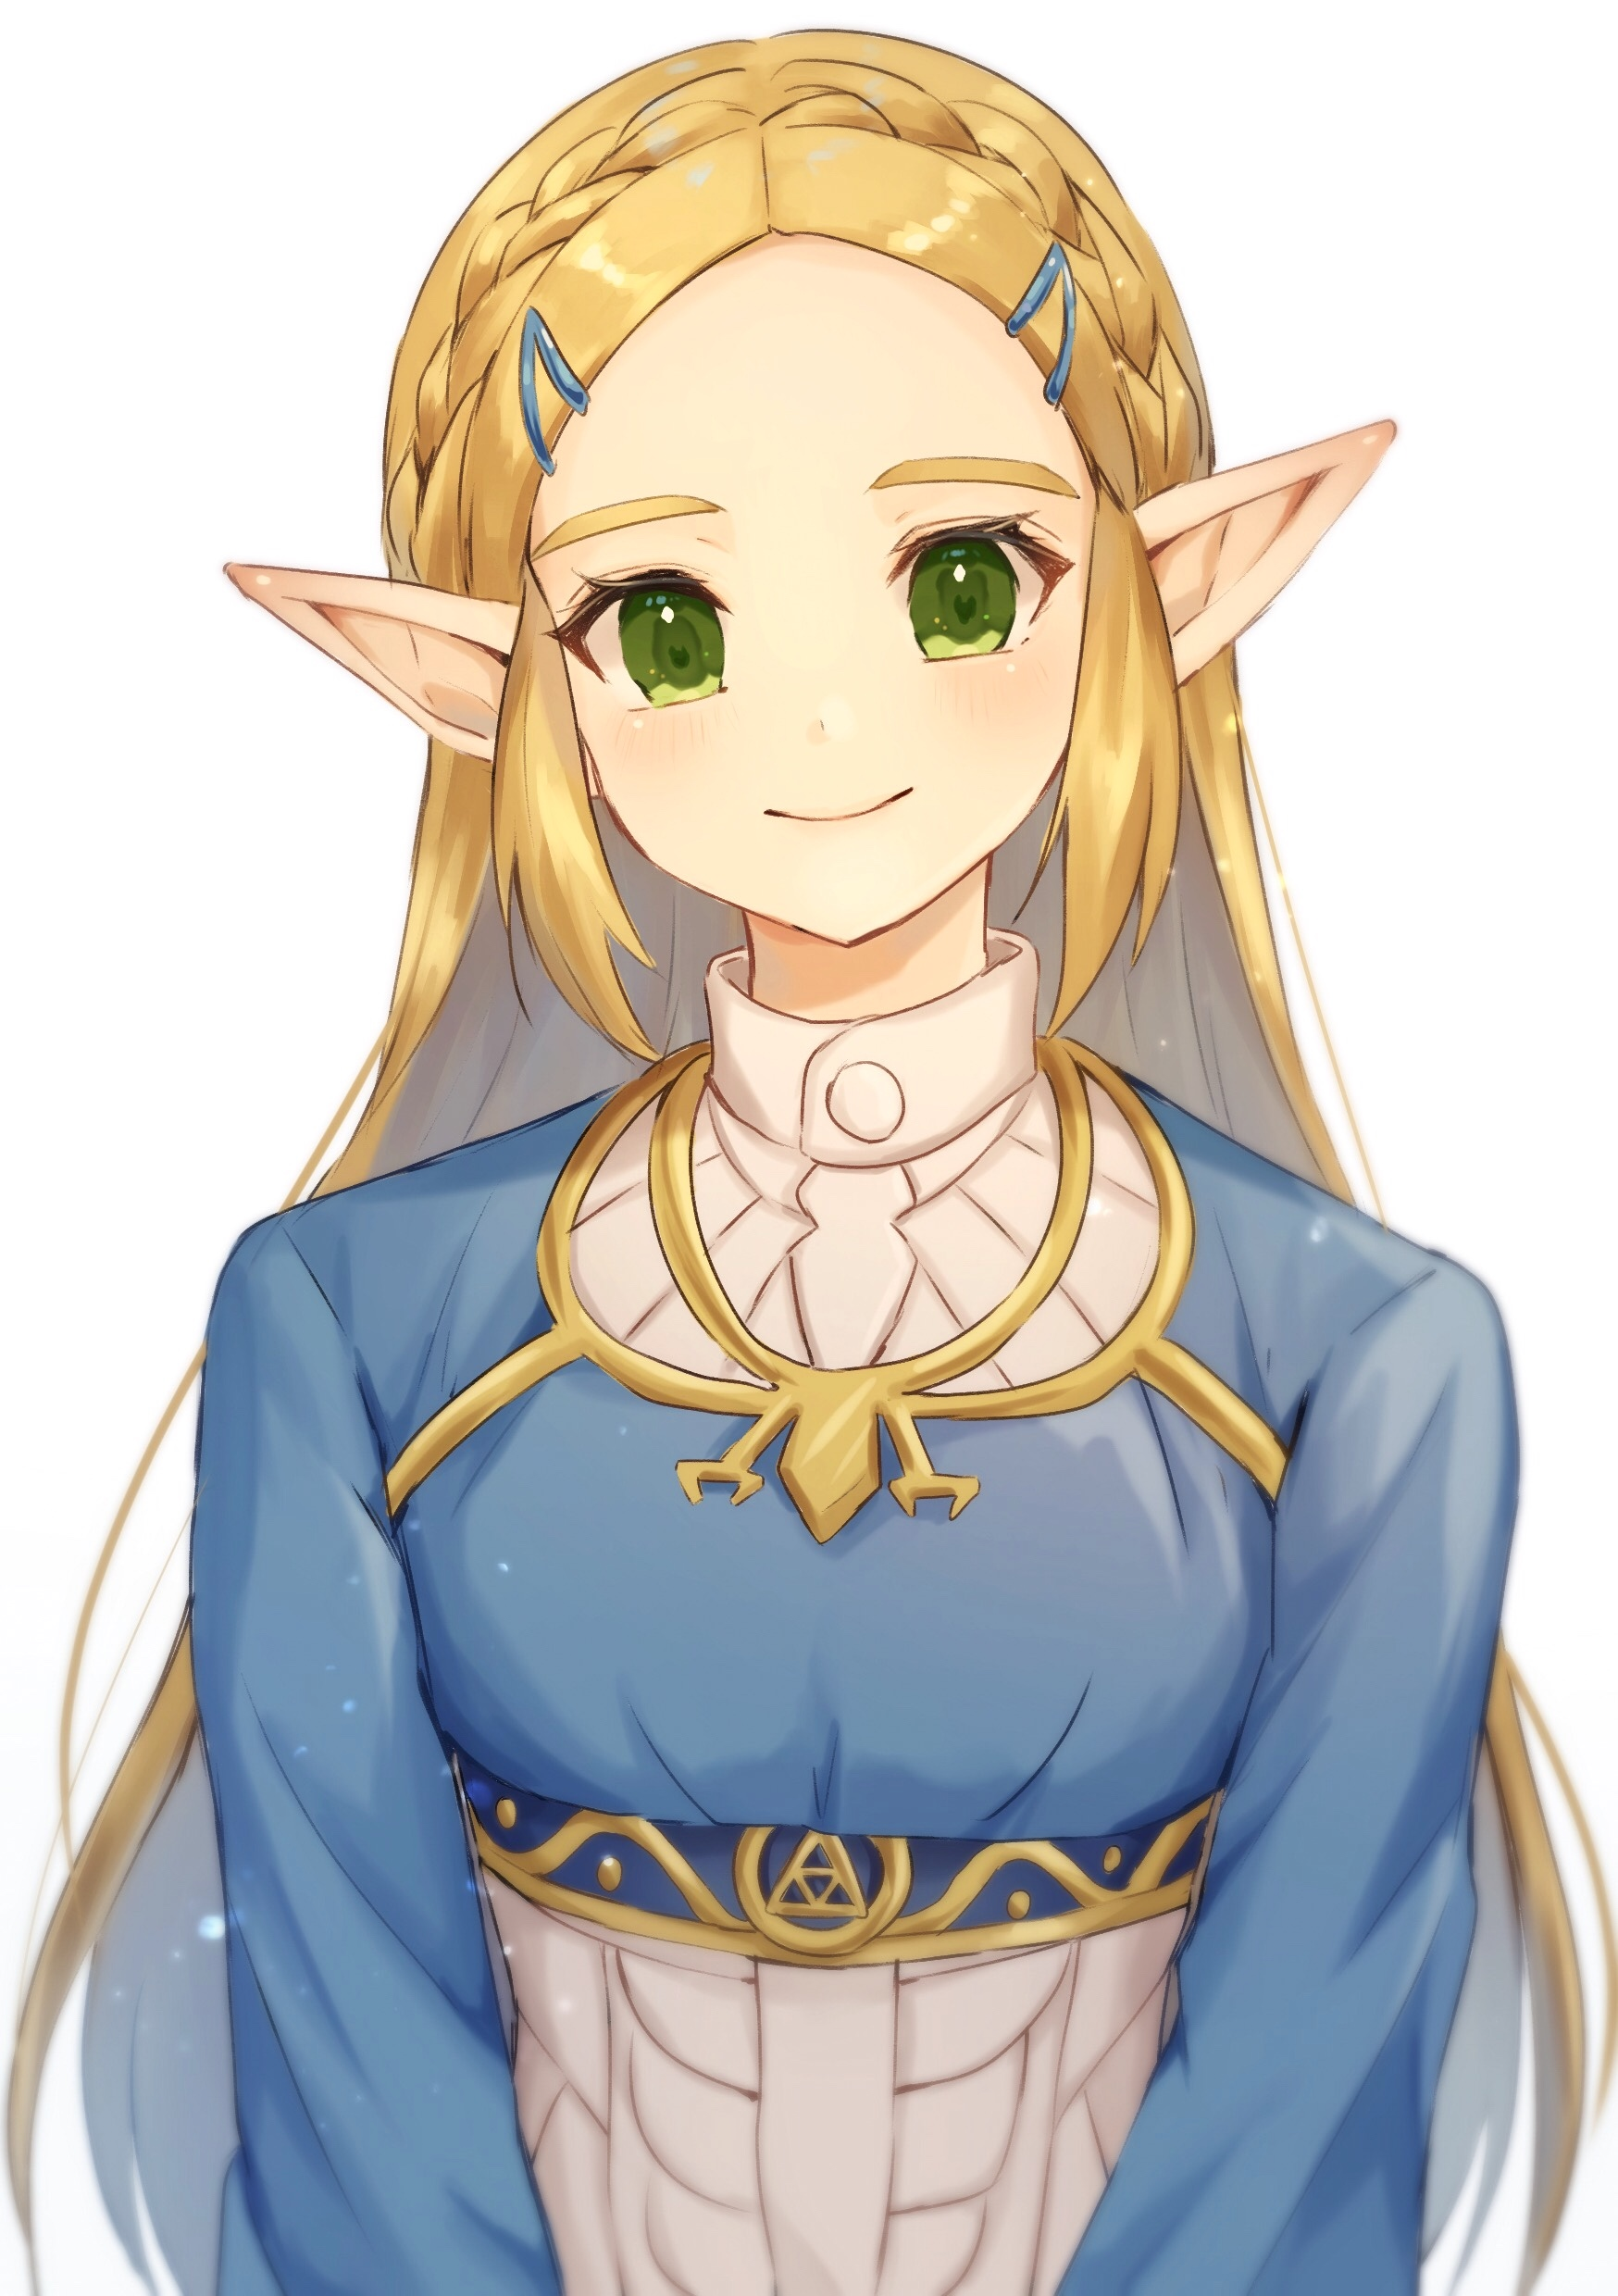 obey me shall we date | Anime, Zelda characters, Genderbend